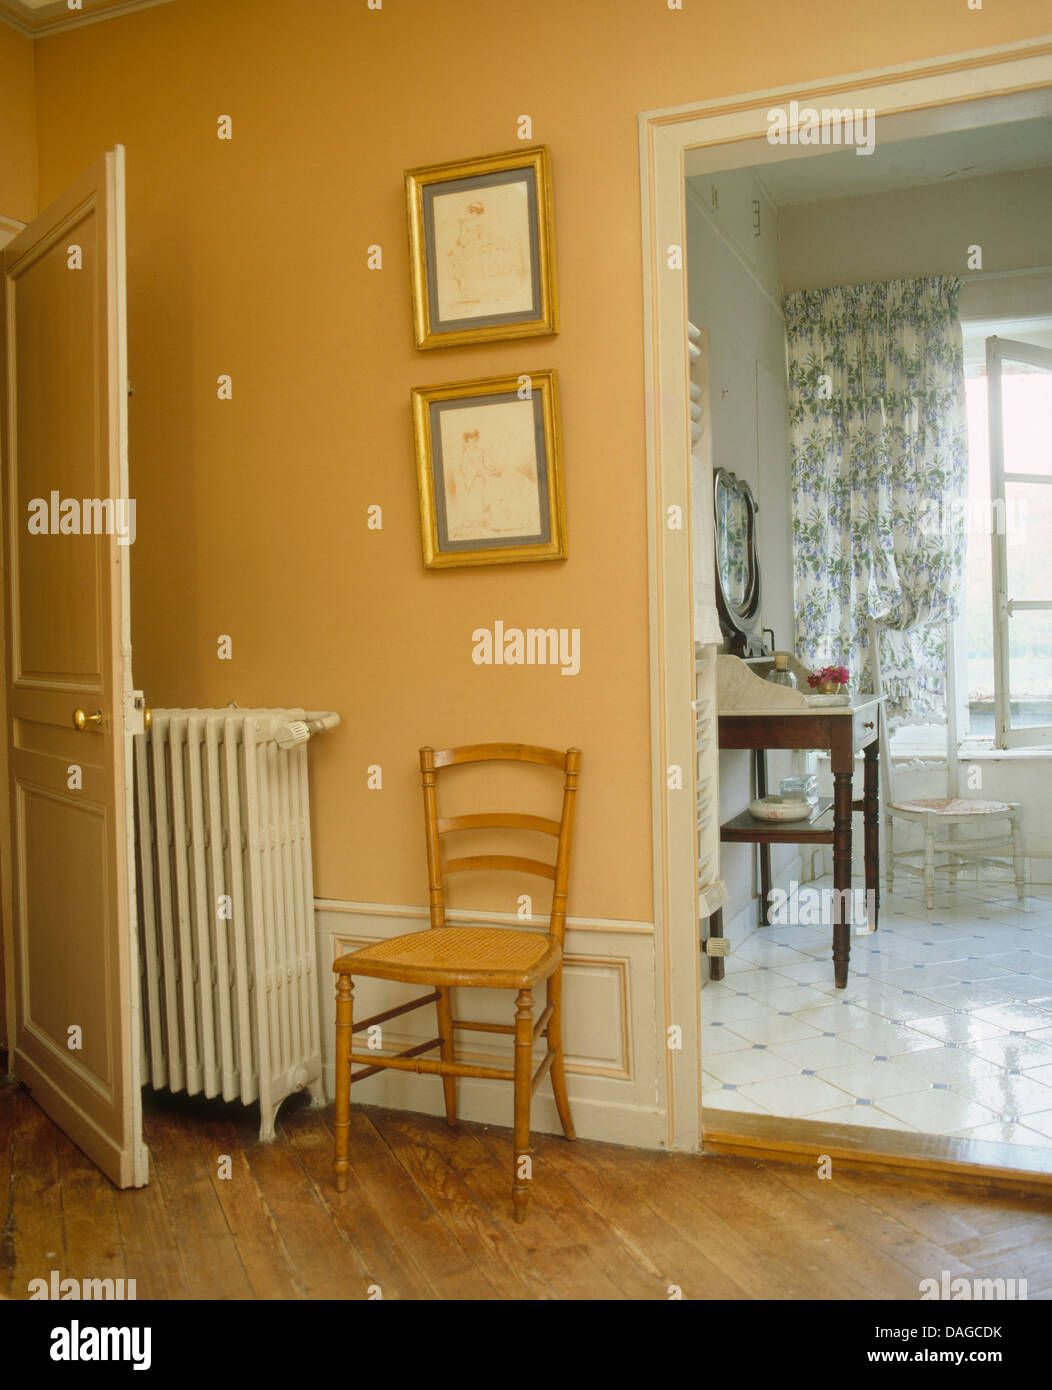 French country bedroom with simple wooden chair beside radiator